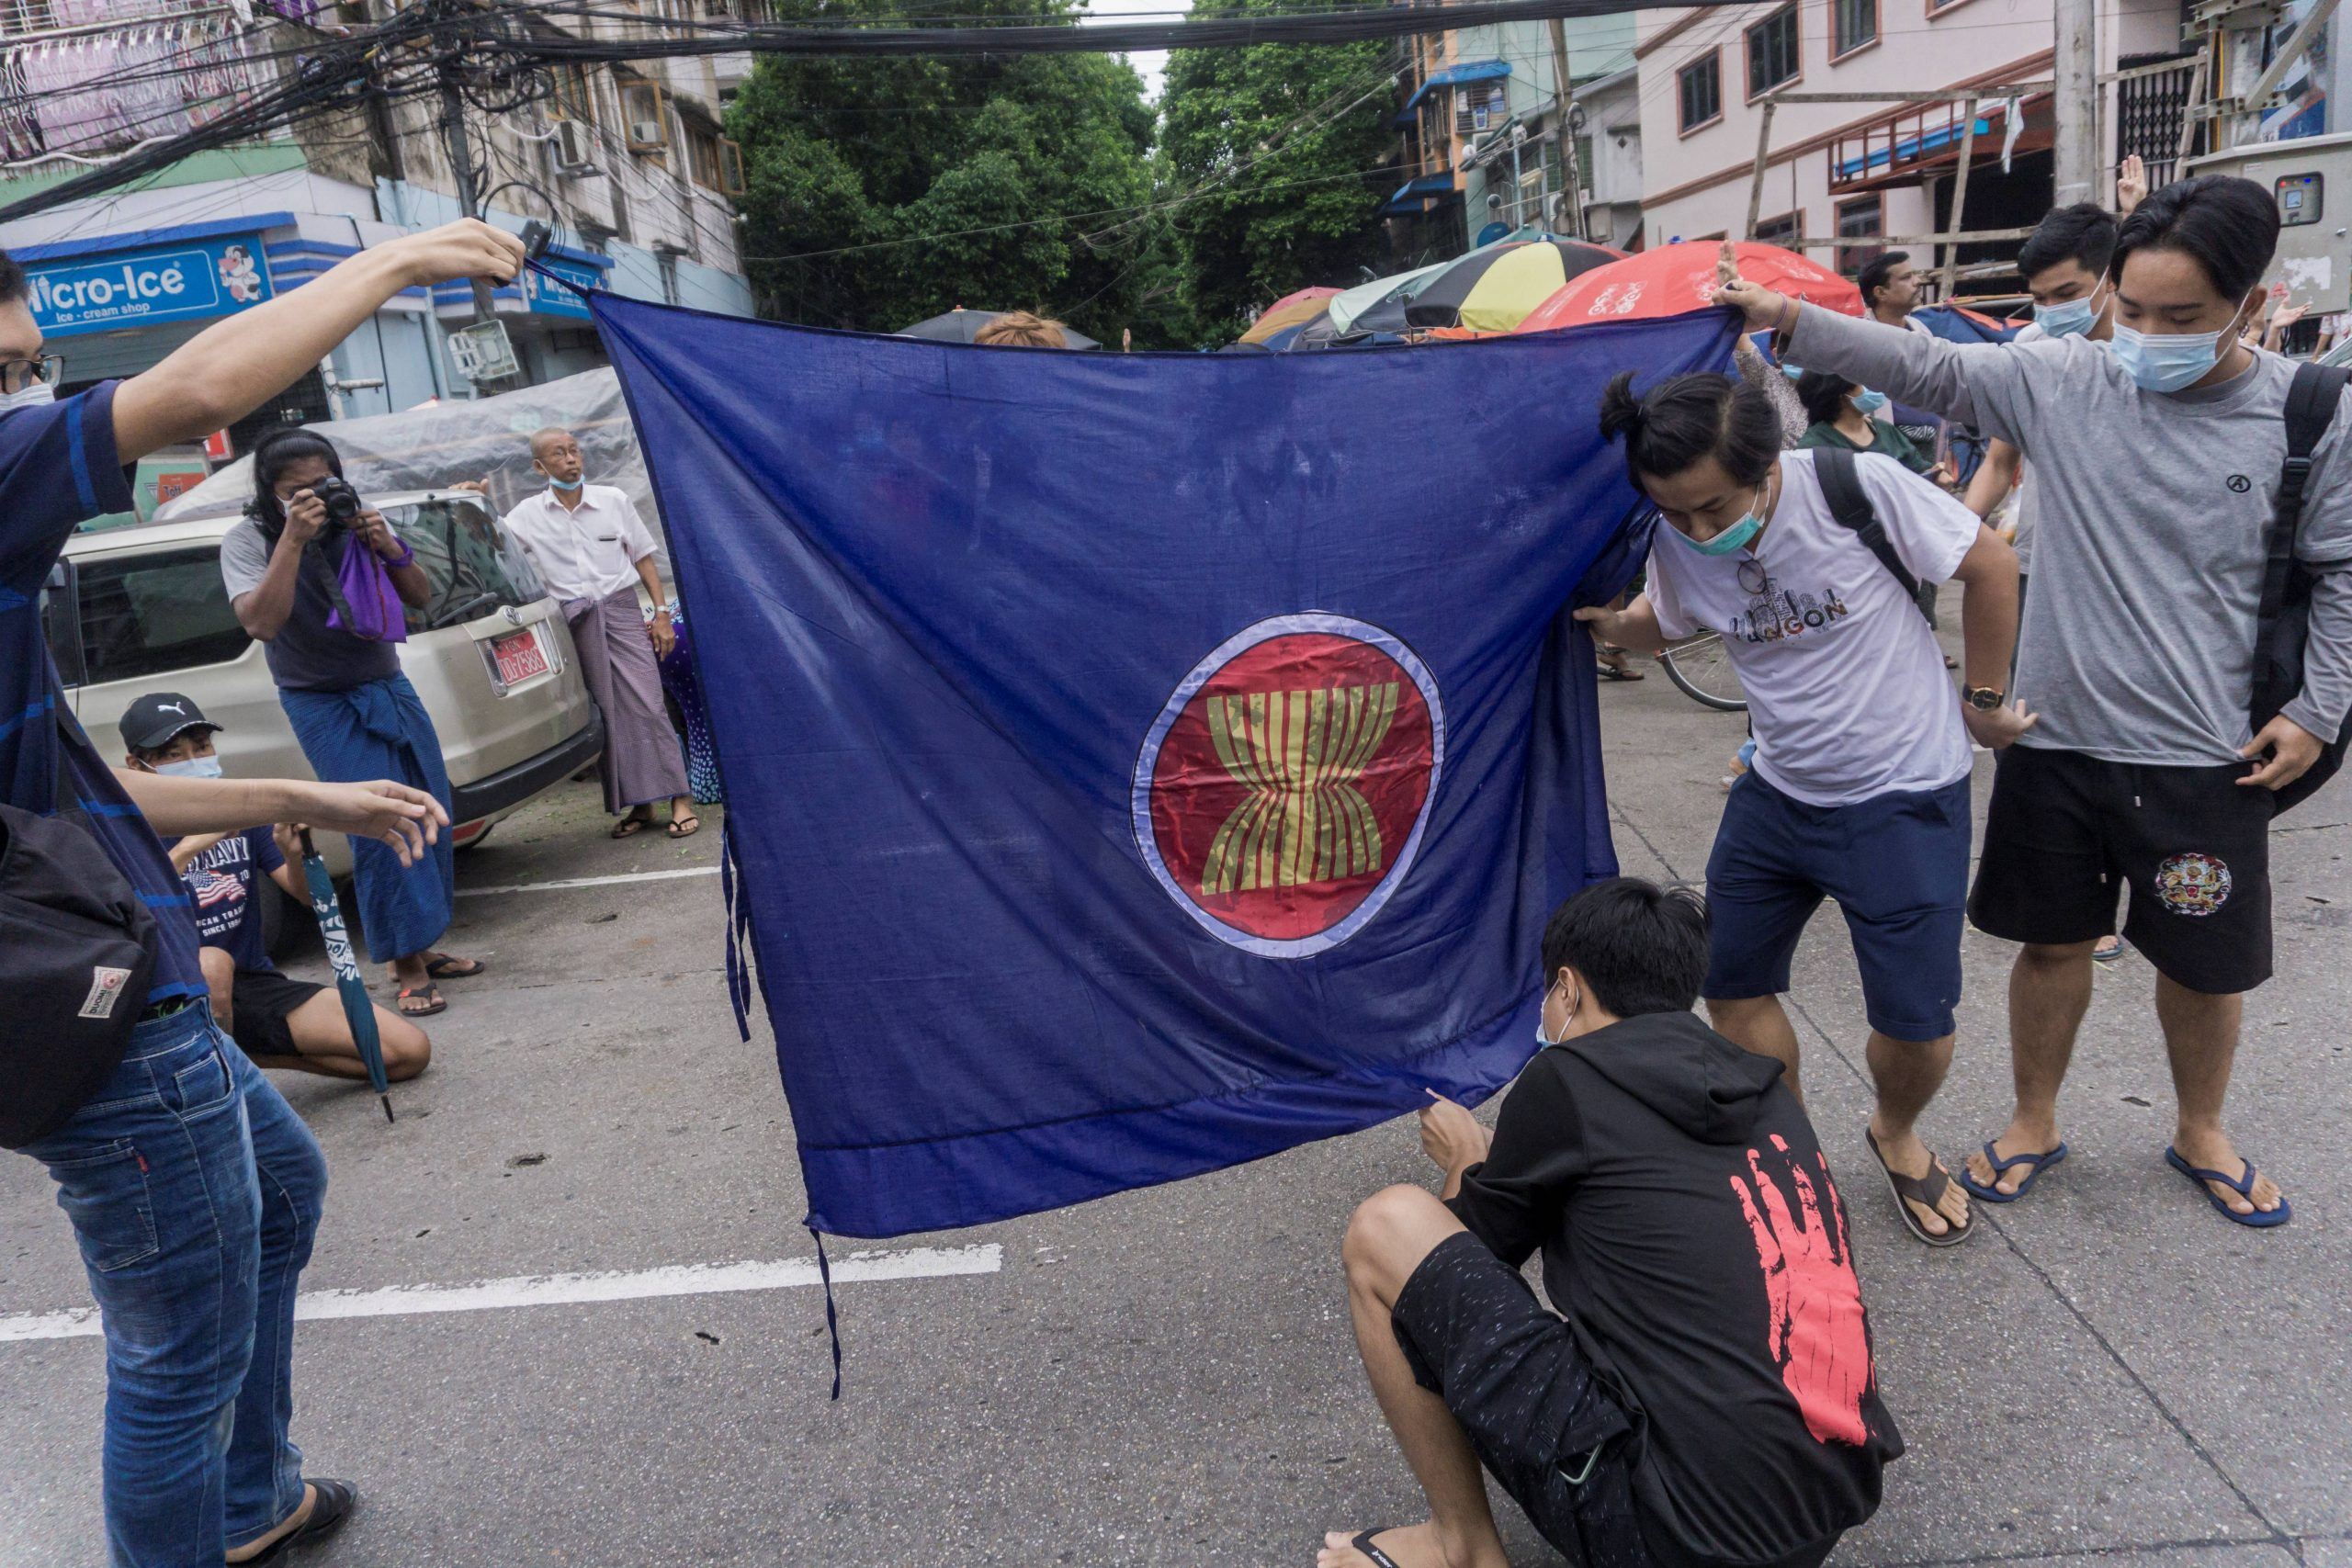 Protesters prepare to burn the flag of the Association of Southeast Asian Nations as they take part in a flash mob demonstration against the military coup in Yangon on June 14, 2021. (AFP)